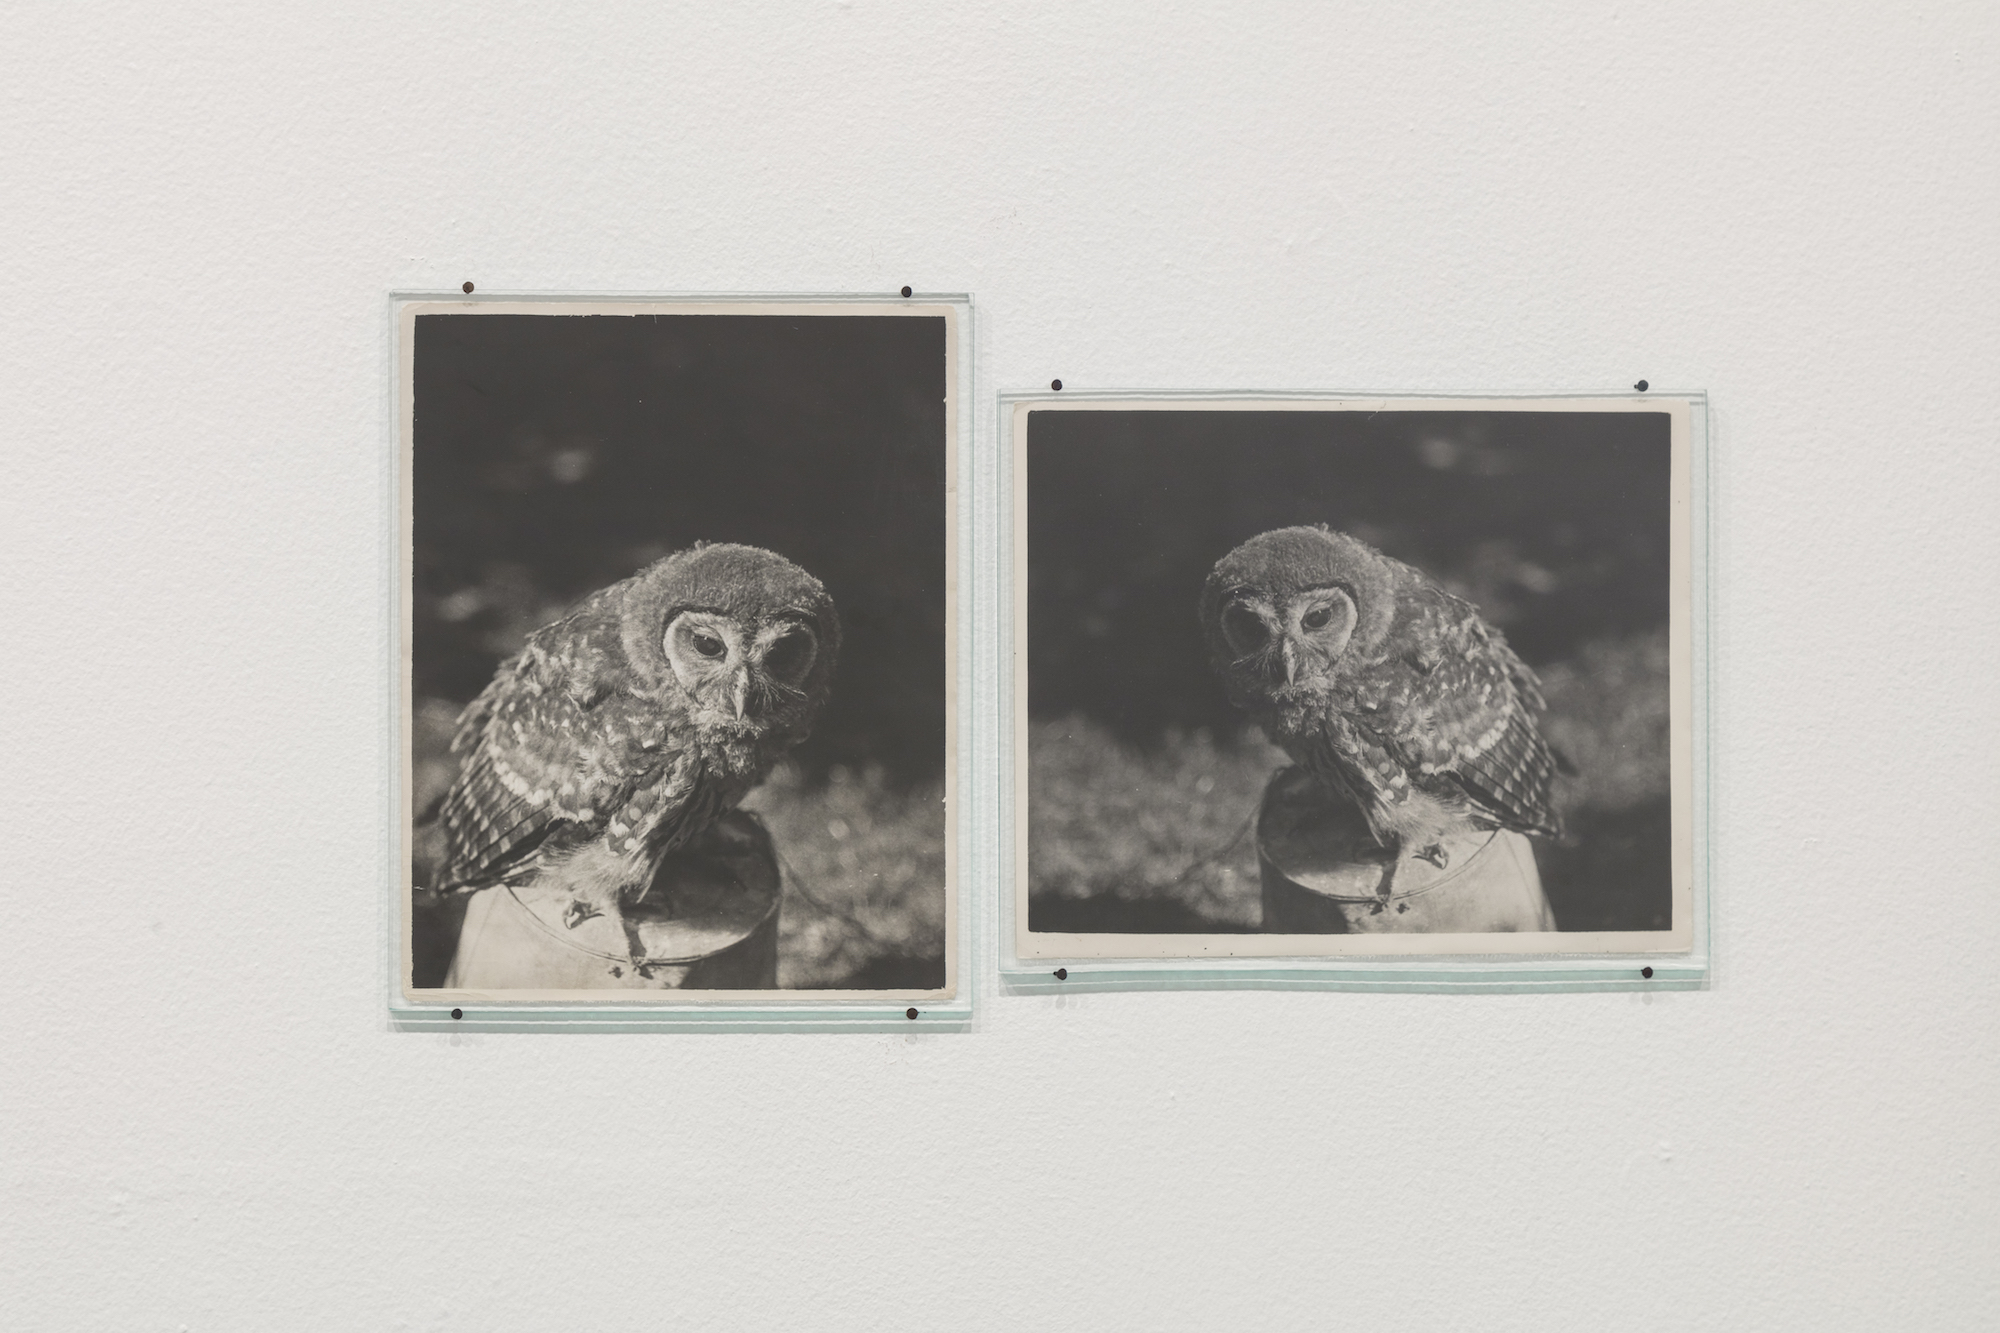 Daniel Gustav Cramer  Owl (1932 / 1938) 2017 2 found photographs, glass plates, nails 34 x 58 cm